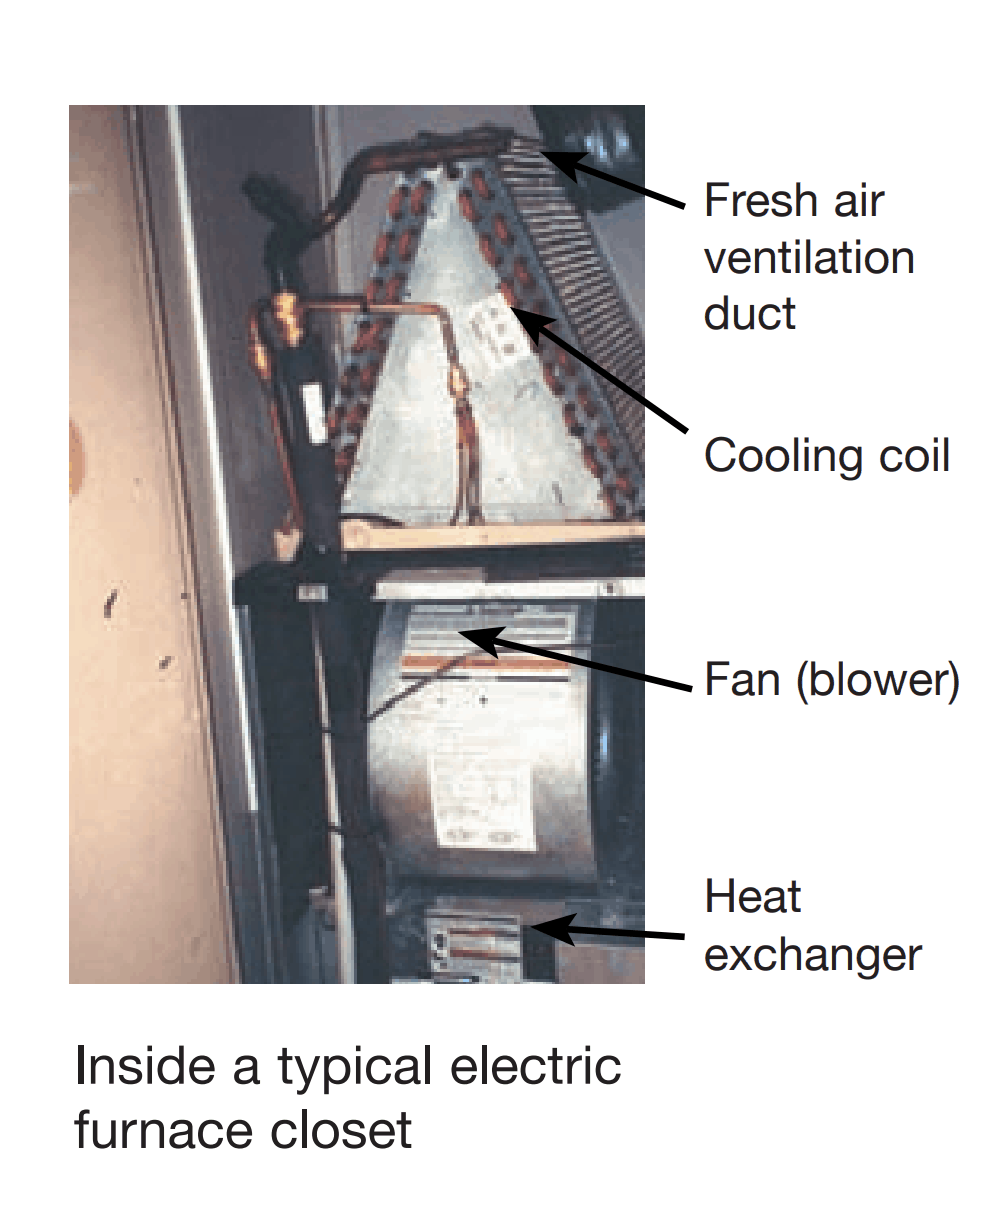 Typical-electric-furnace-in-a-mobile-home-with-cooling-coil-blower-and-heat-exchanger-HUD